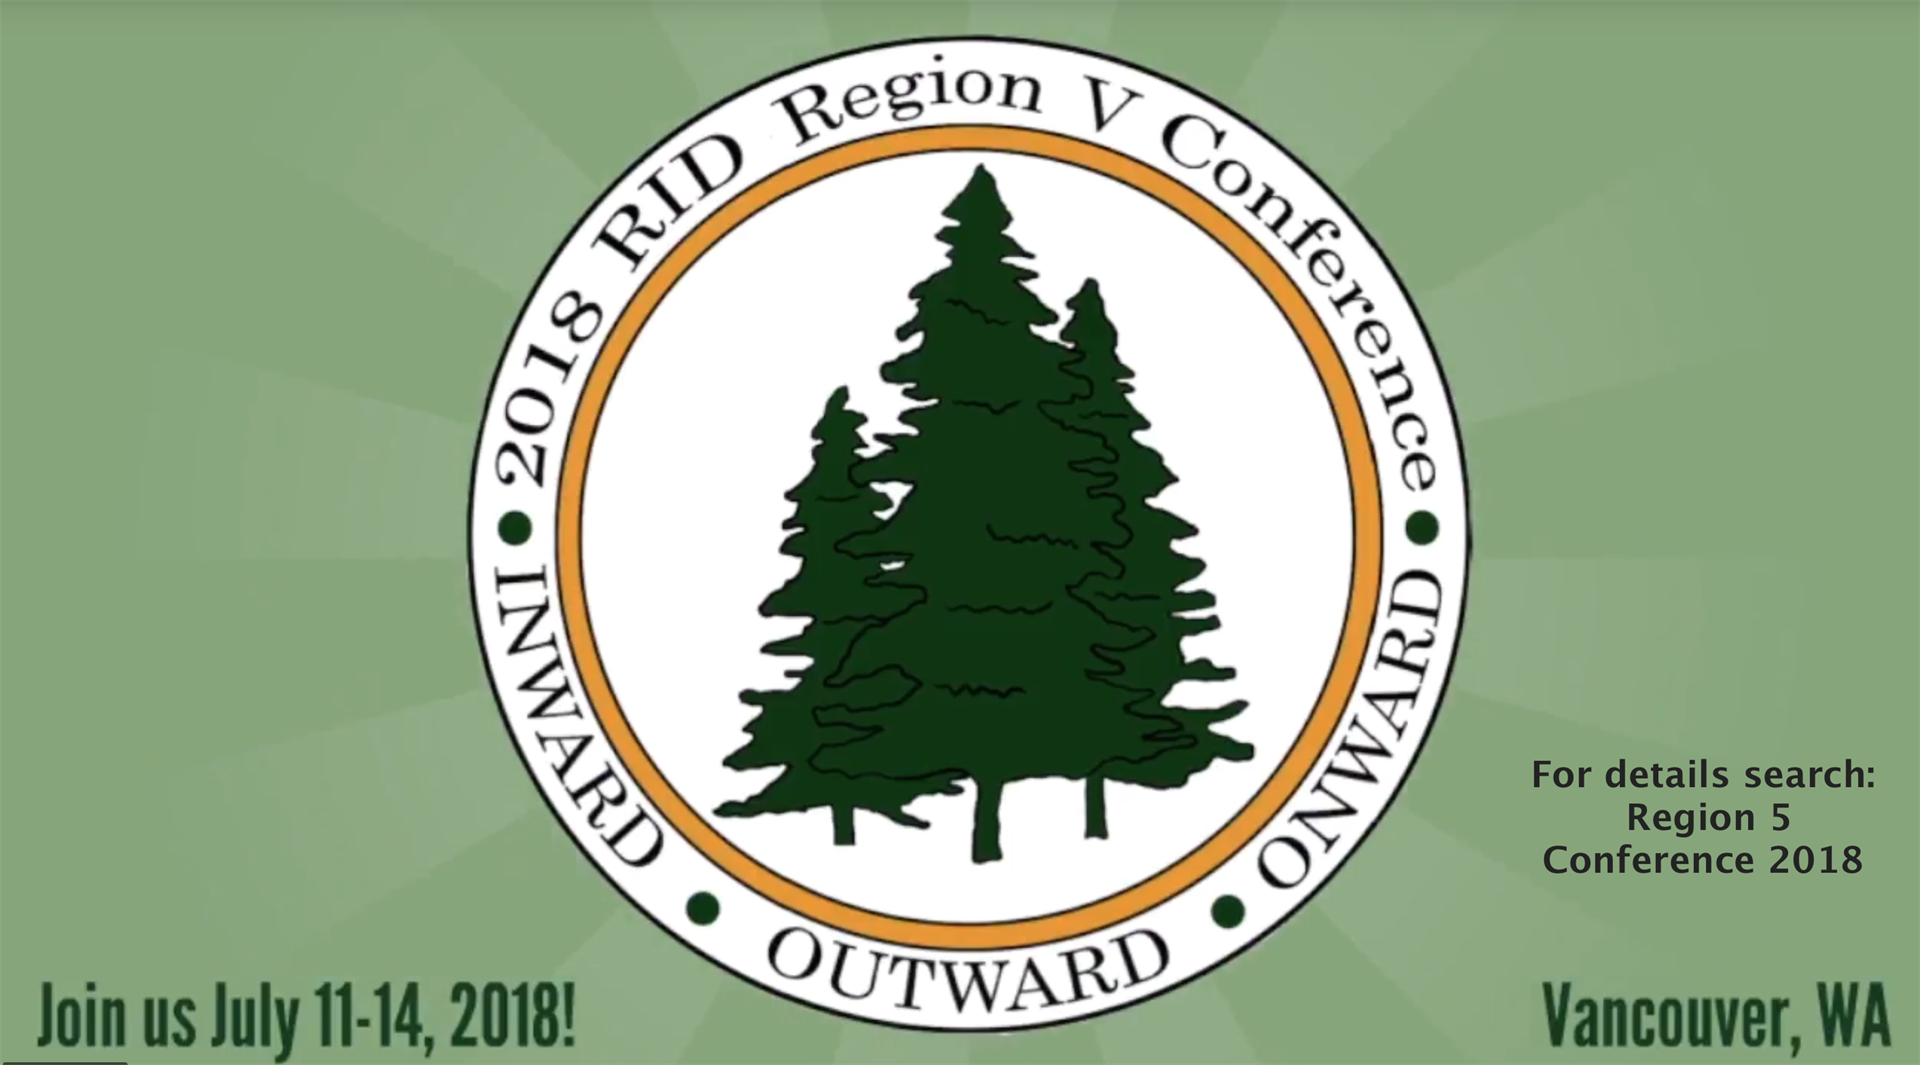 2018 RID Region V Conference INWARD OUTWARD ONWARD Join us July 11-14, 2018! Vancouver, WA For details search Region 5 Conference 2018